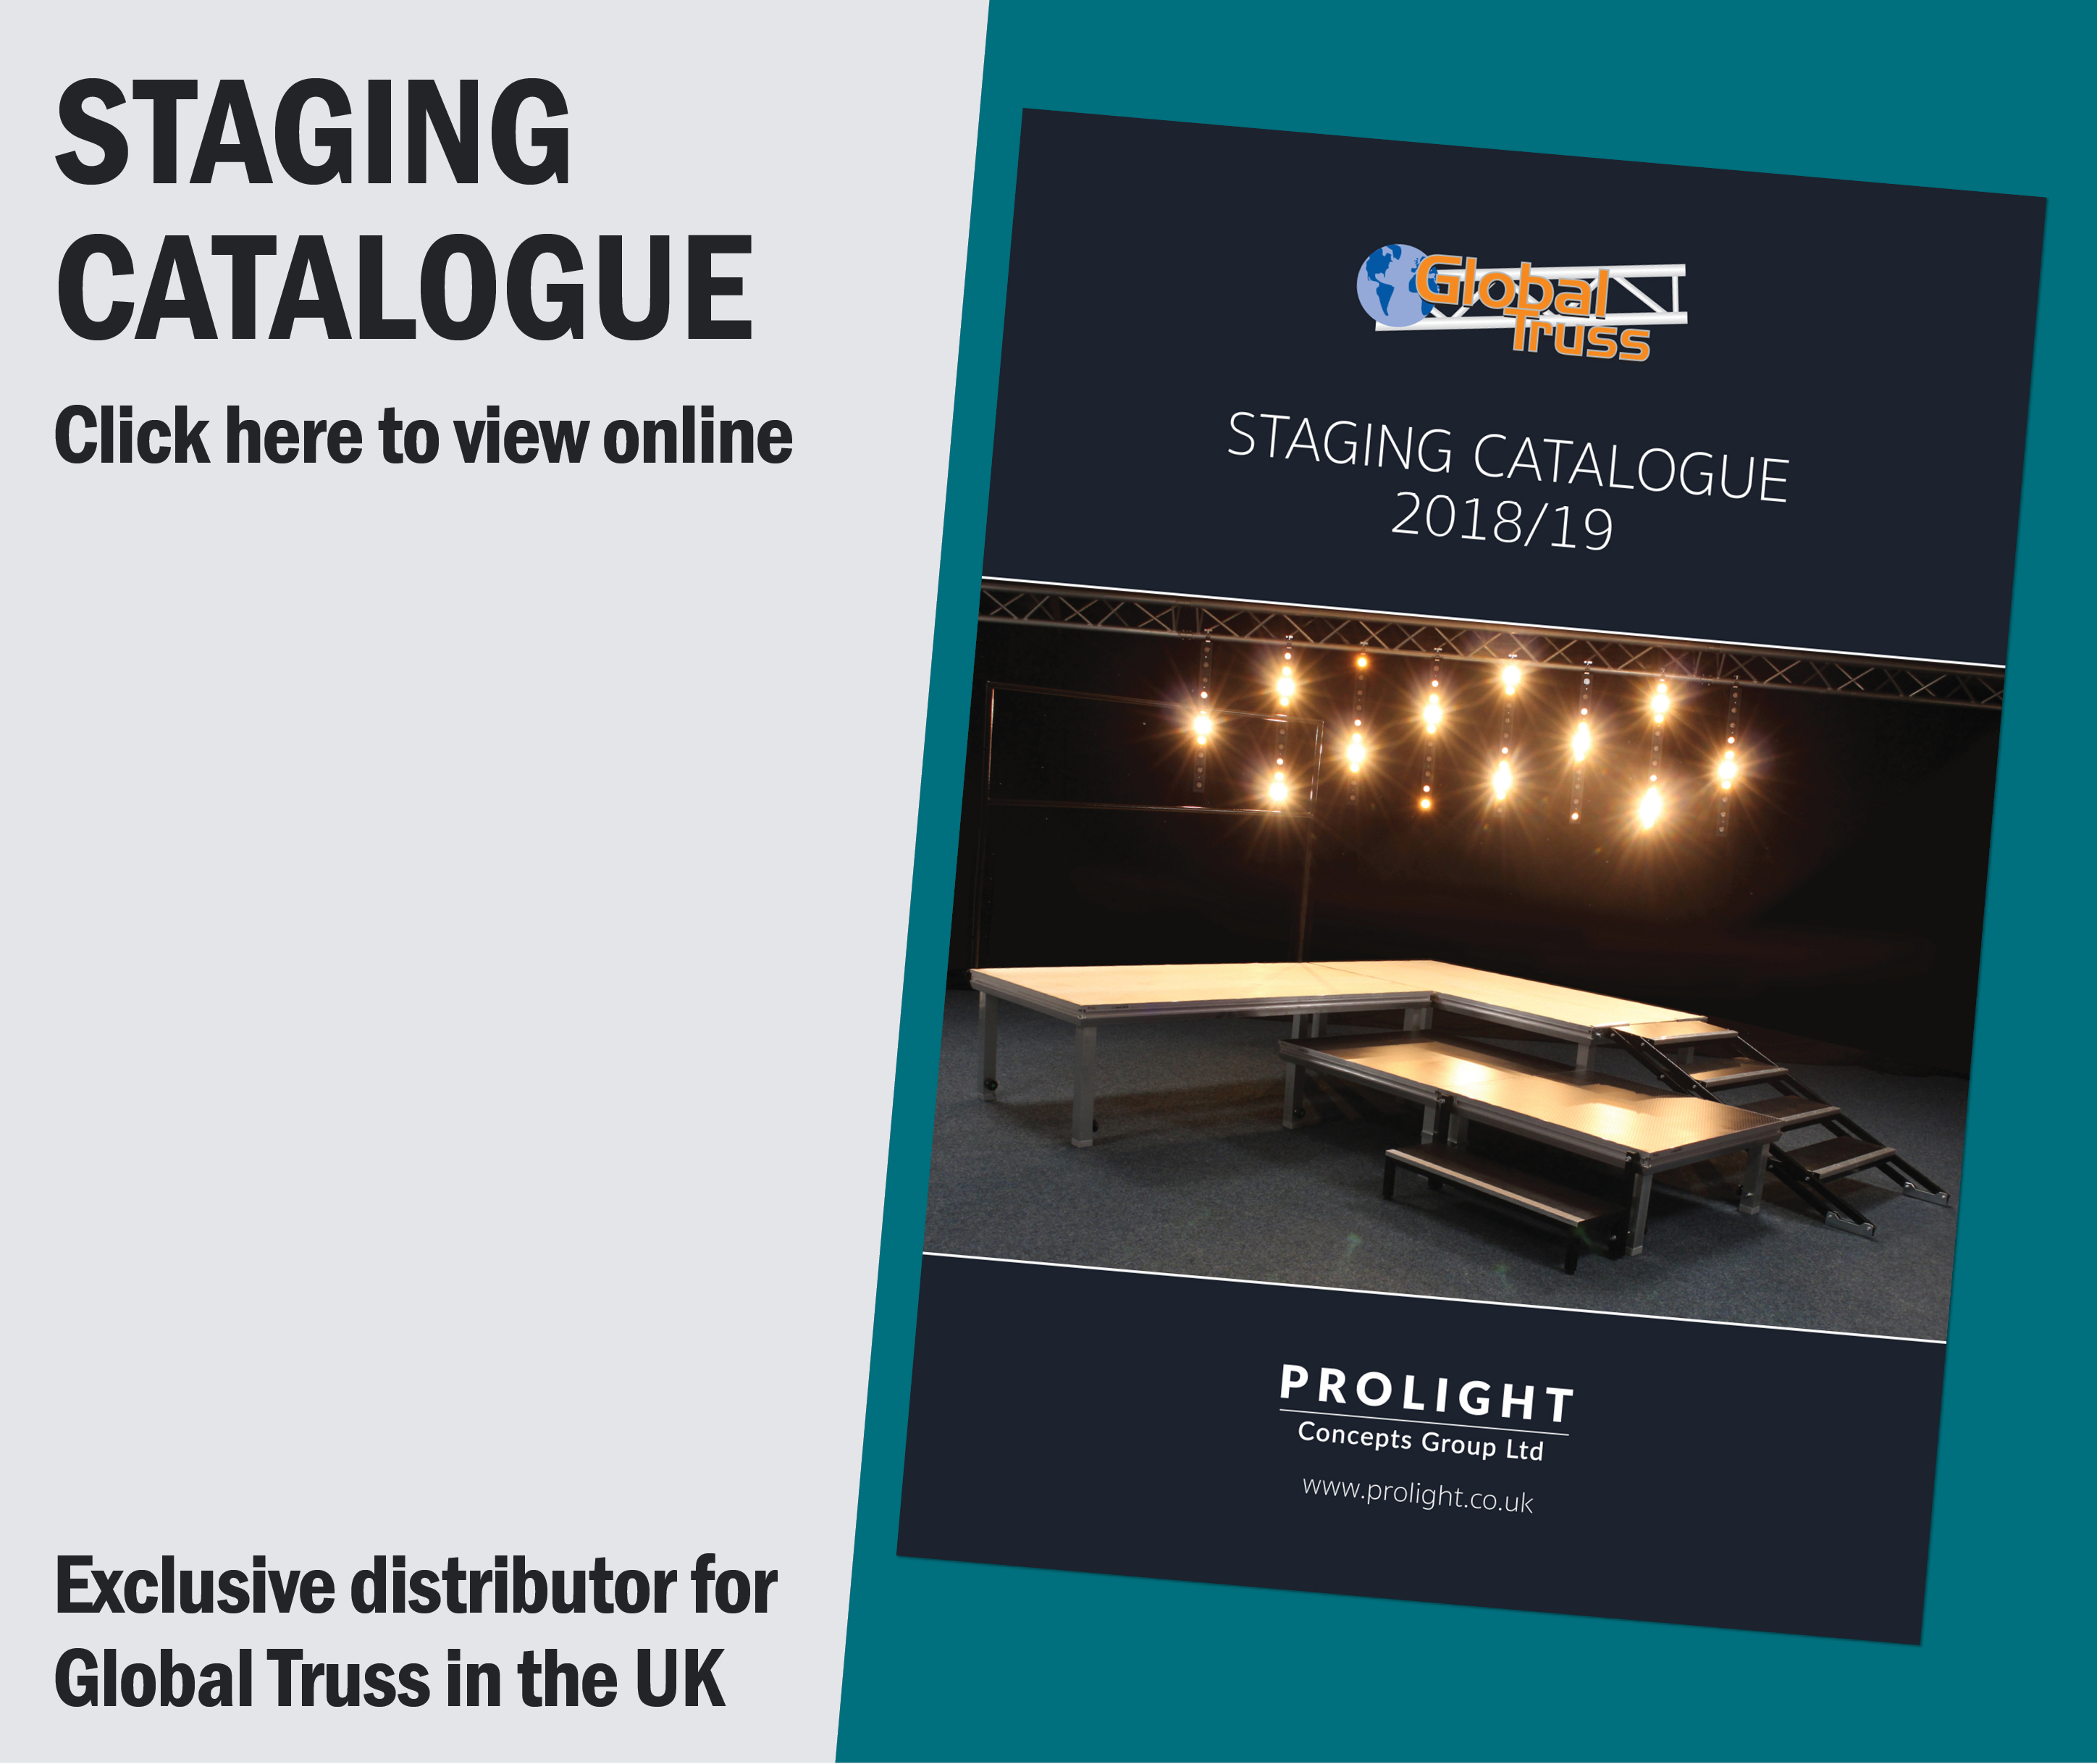 Staging Catalogue